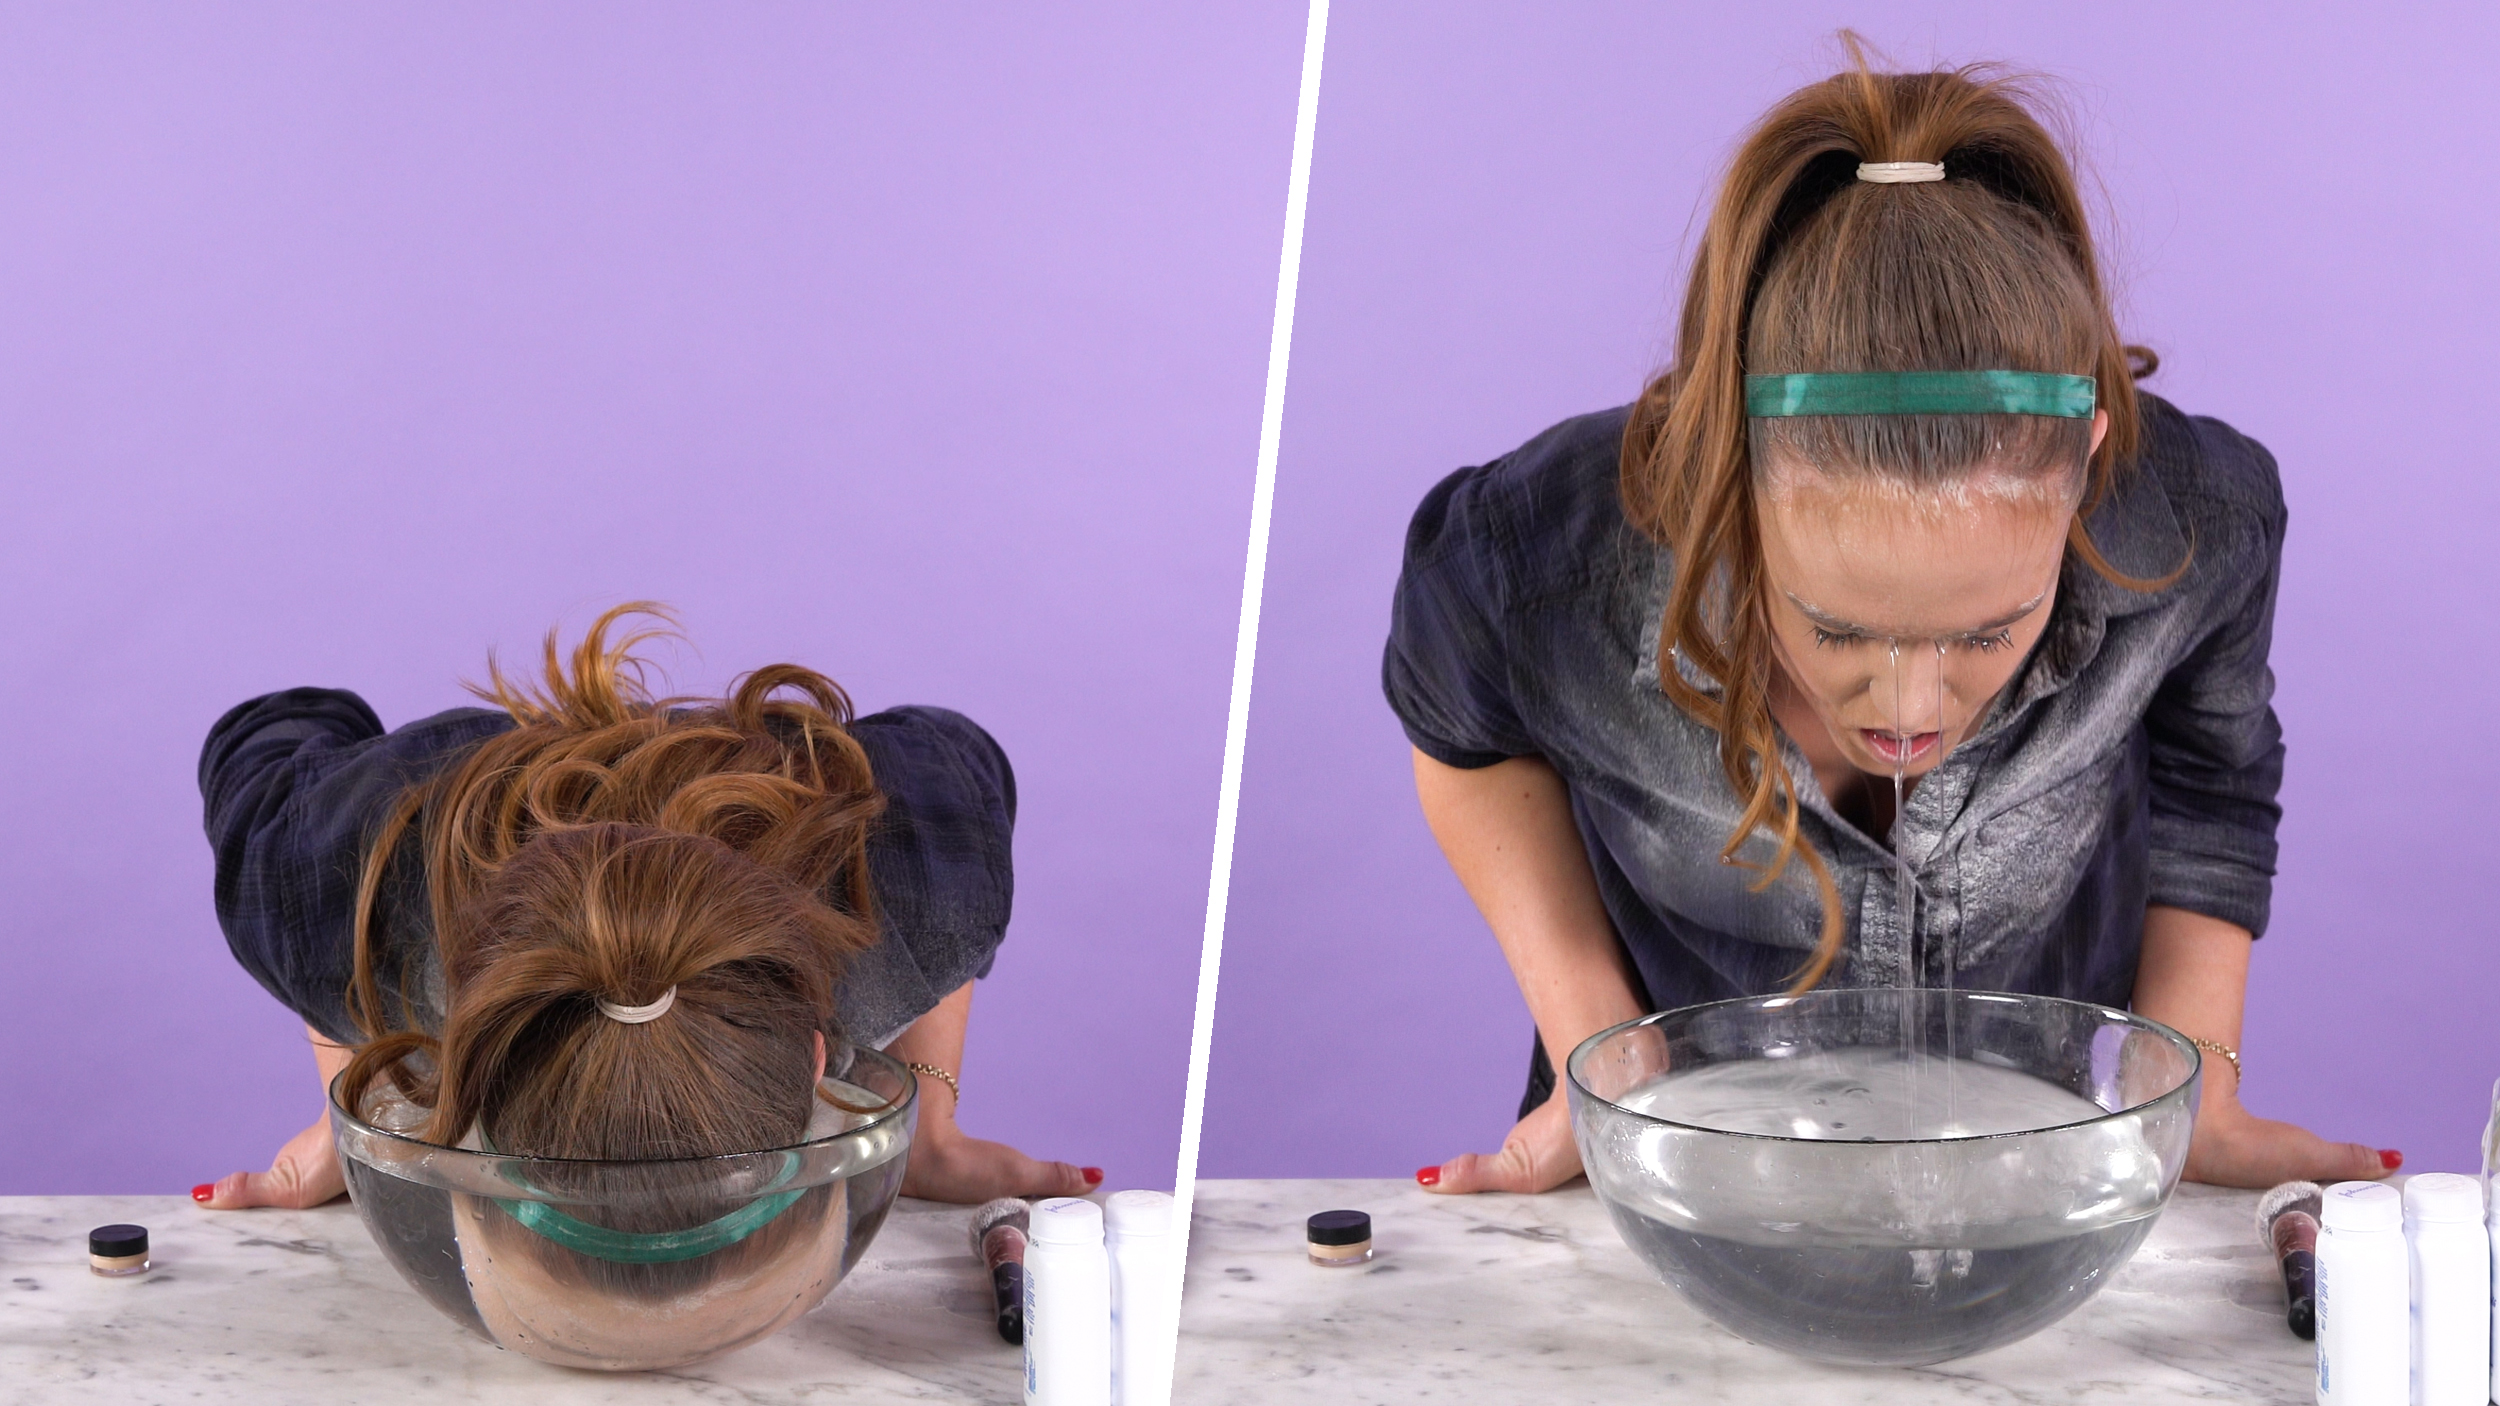 I tried dunking my face in water for longer-lasting makeup — and it worked!